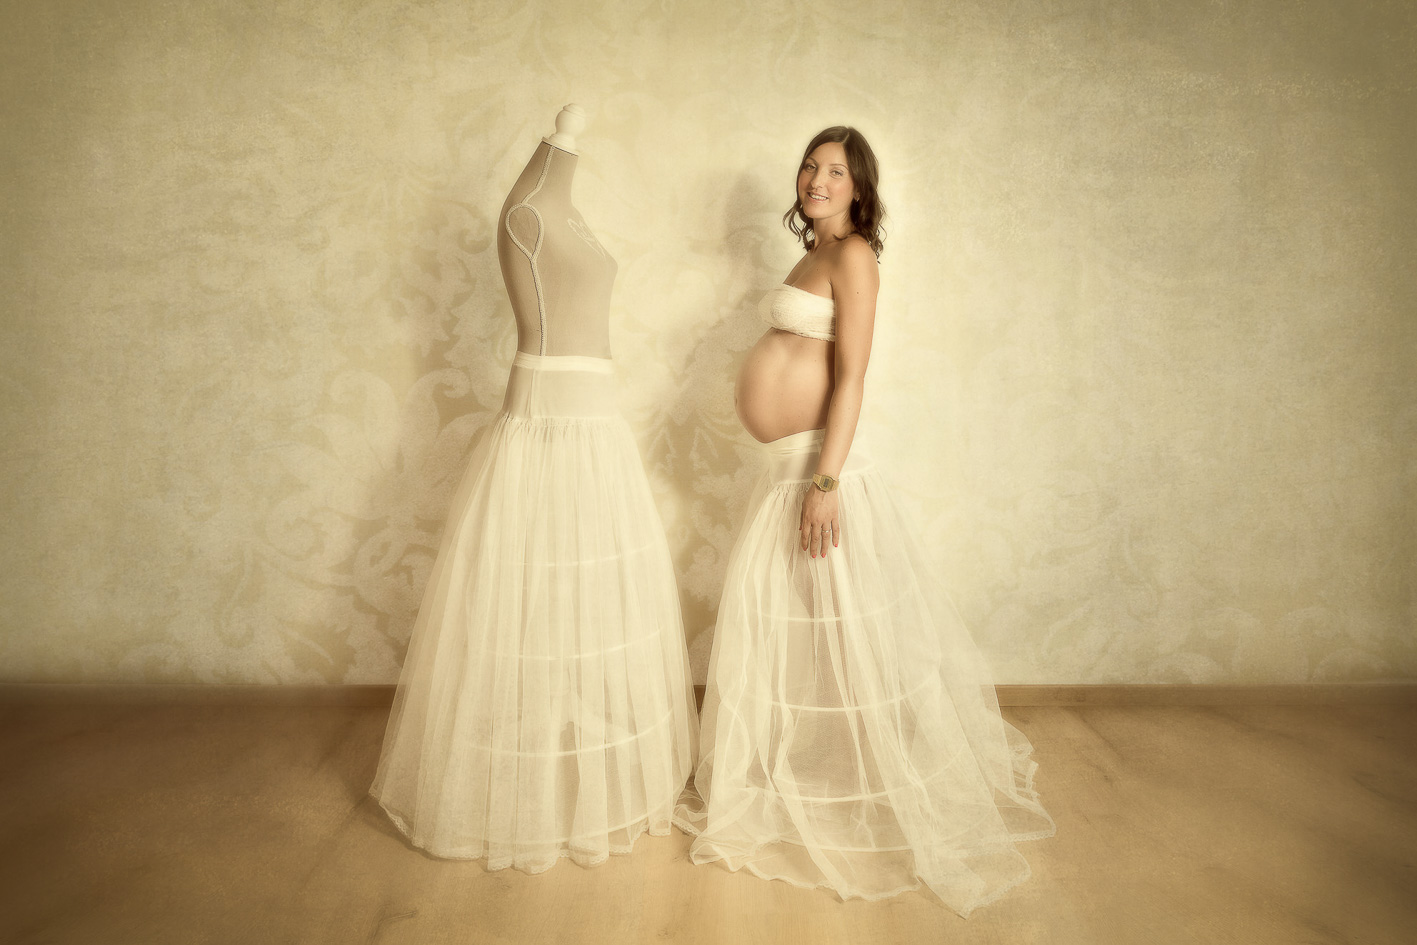 maternity-tagg-photography-39